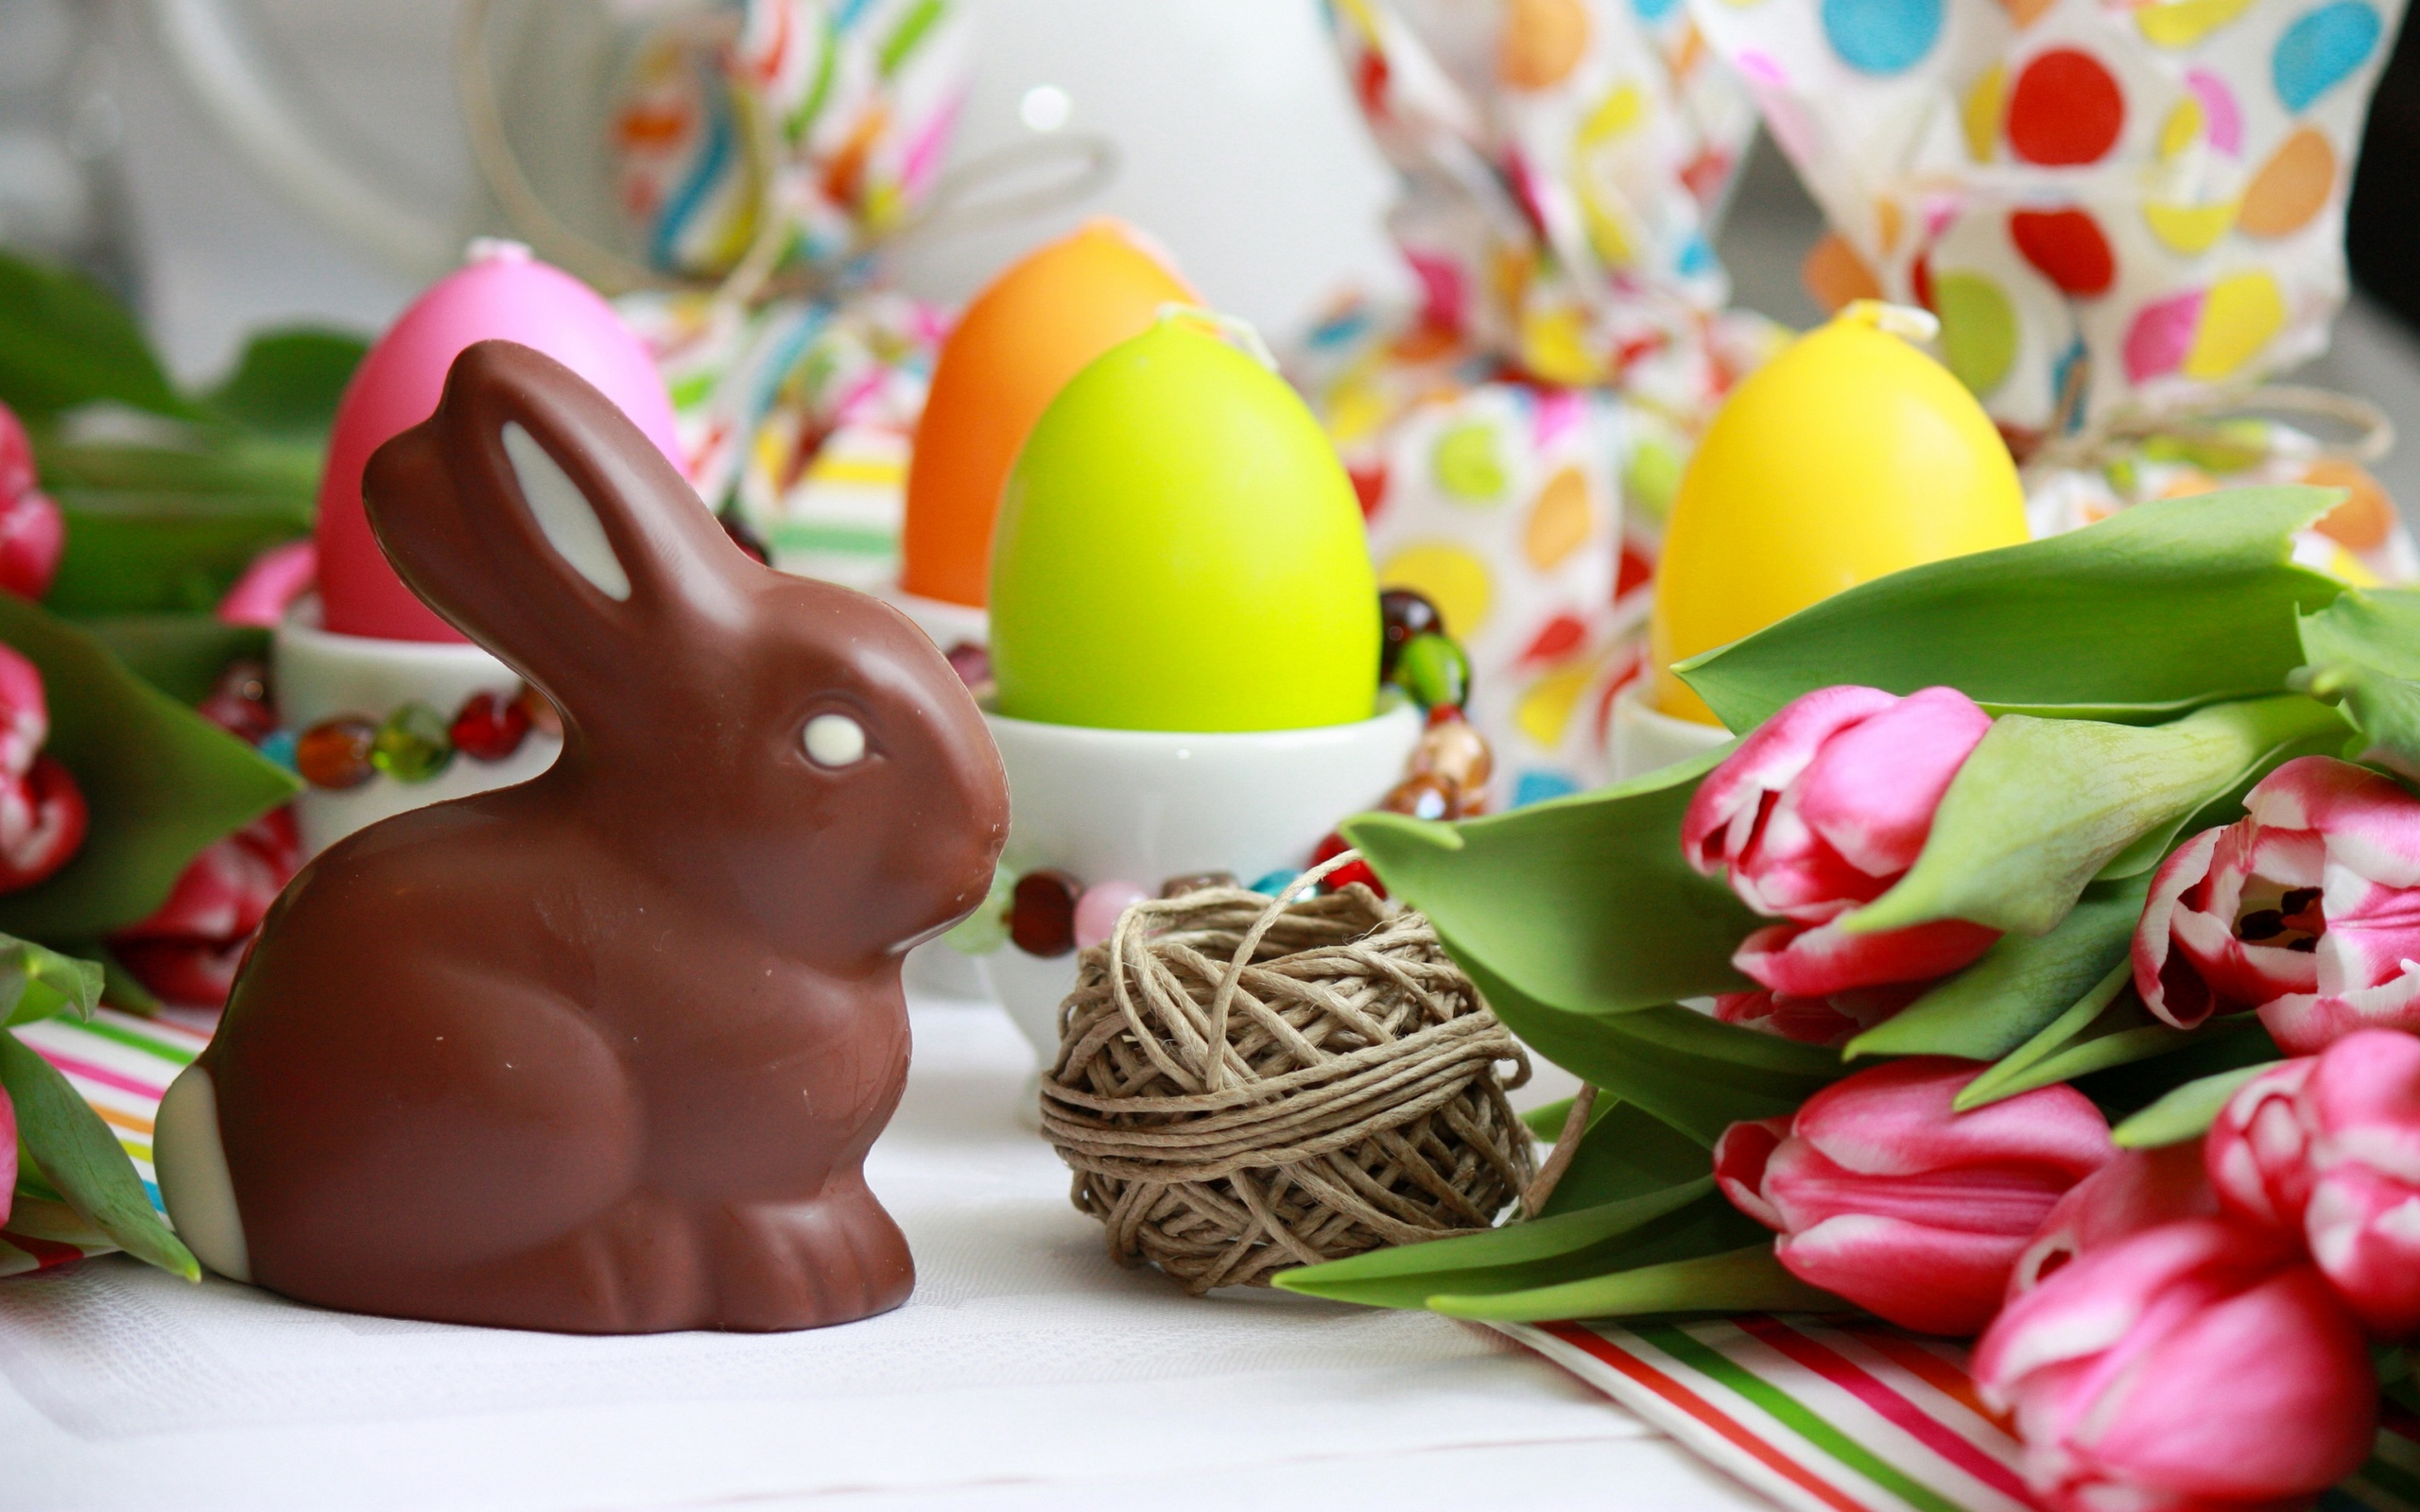 Happy Easter! I hope that you had a delightful Easter celebration with ...